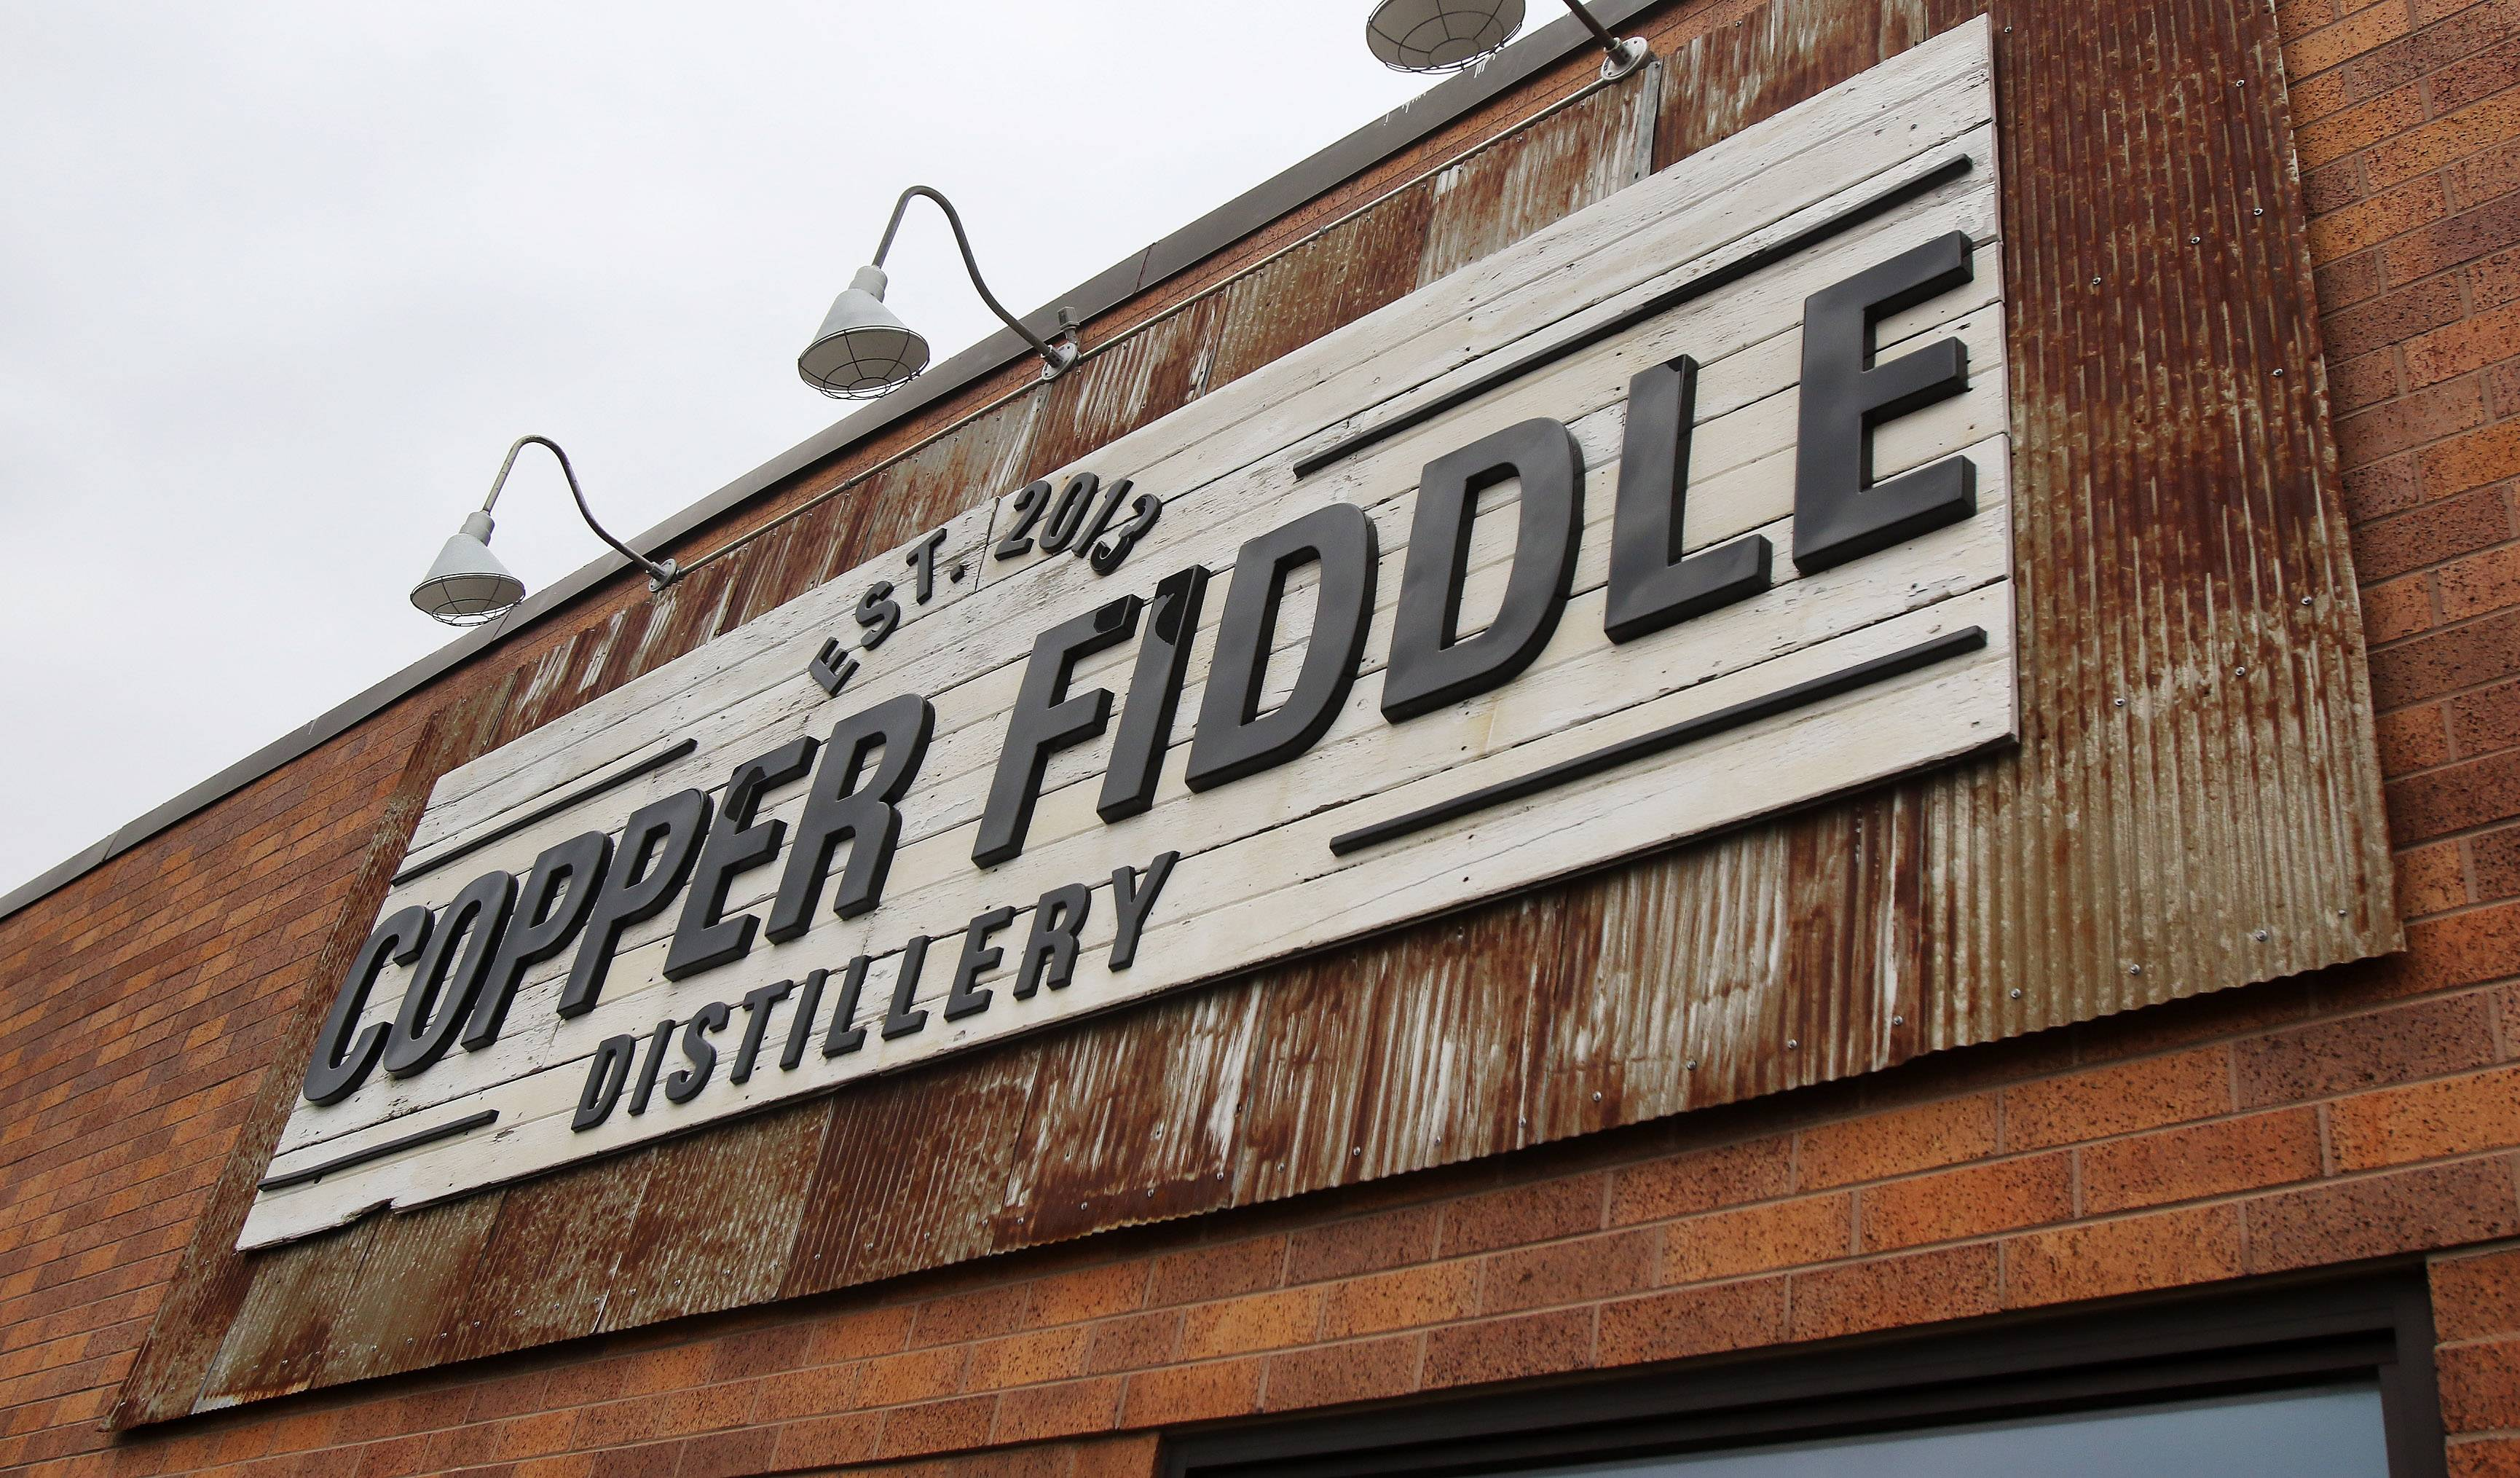 Copper Fiddle Distillery in Lake Zurich is among the small craft producers in Illinois hoping the General Assembly amends a state law barring them from self-delivering their products to local stores and bars.